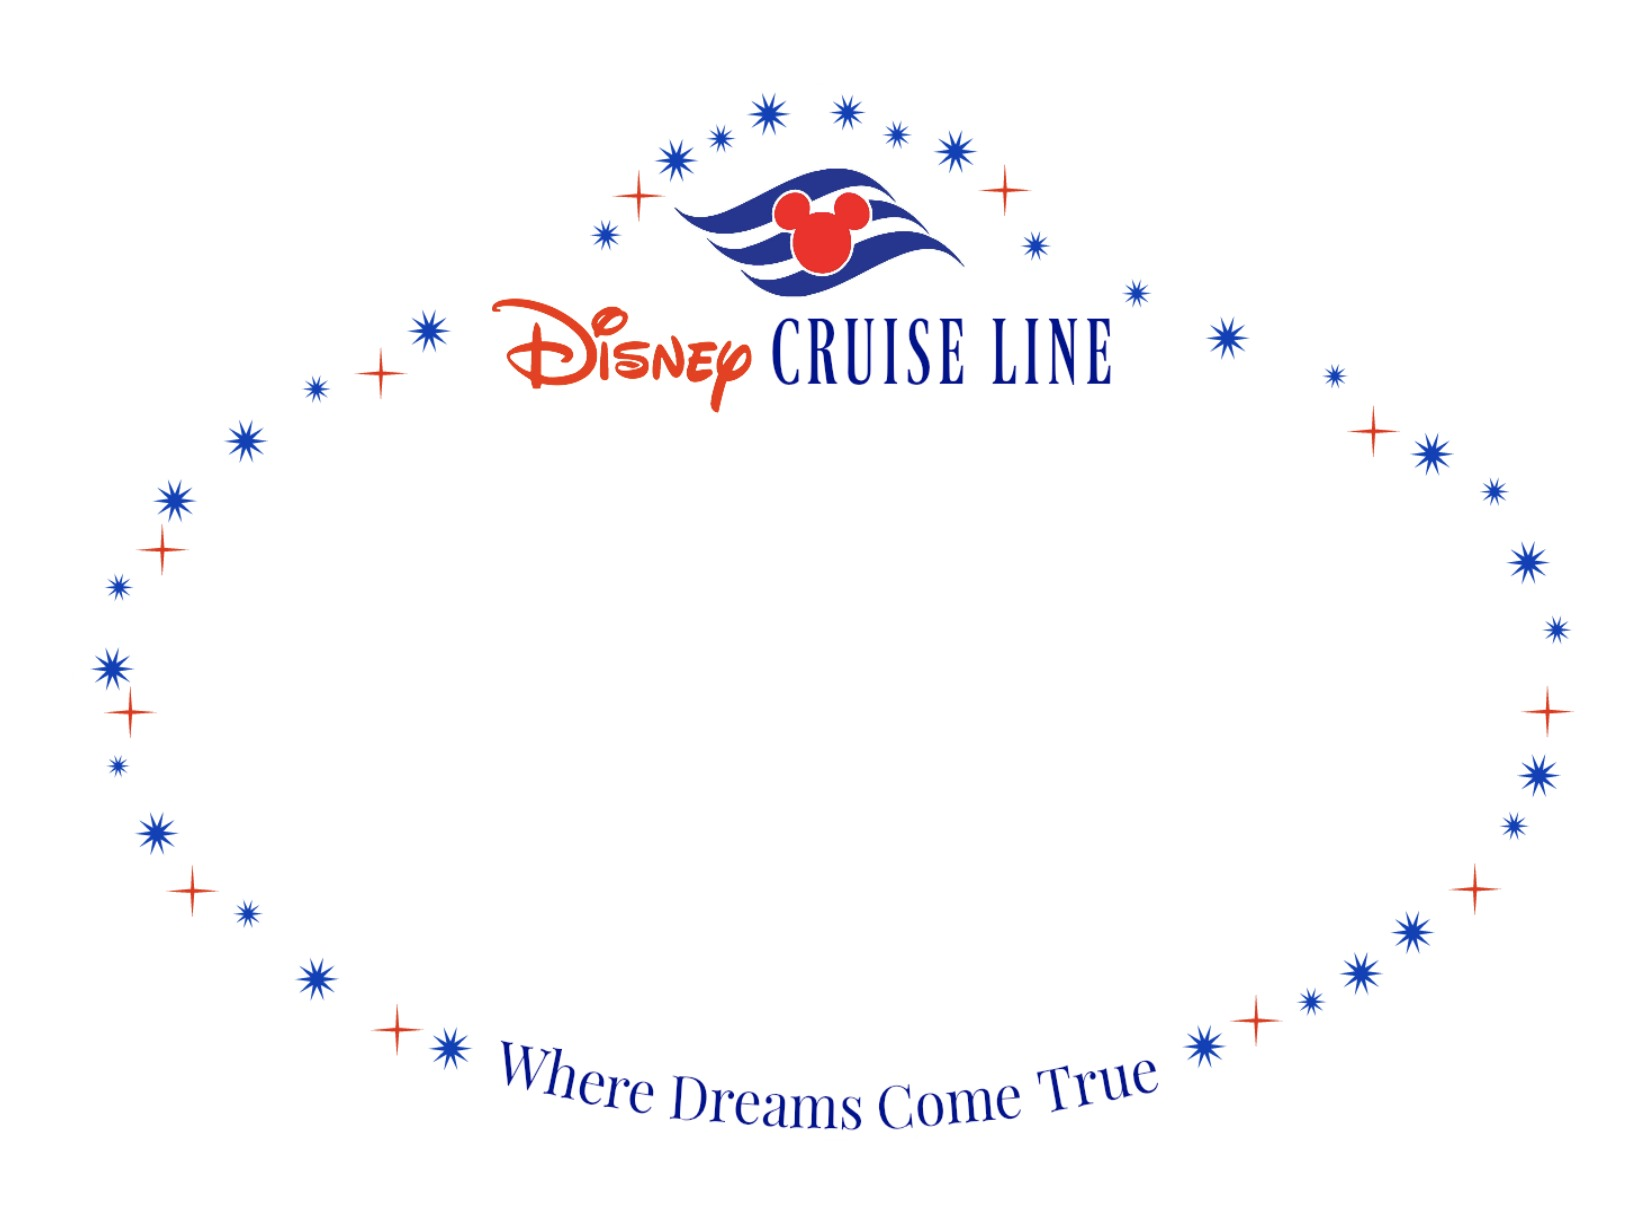 How Do I Print Magnets For My Disney Cruise